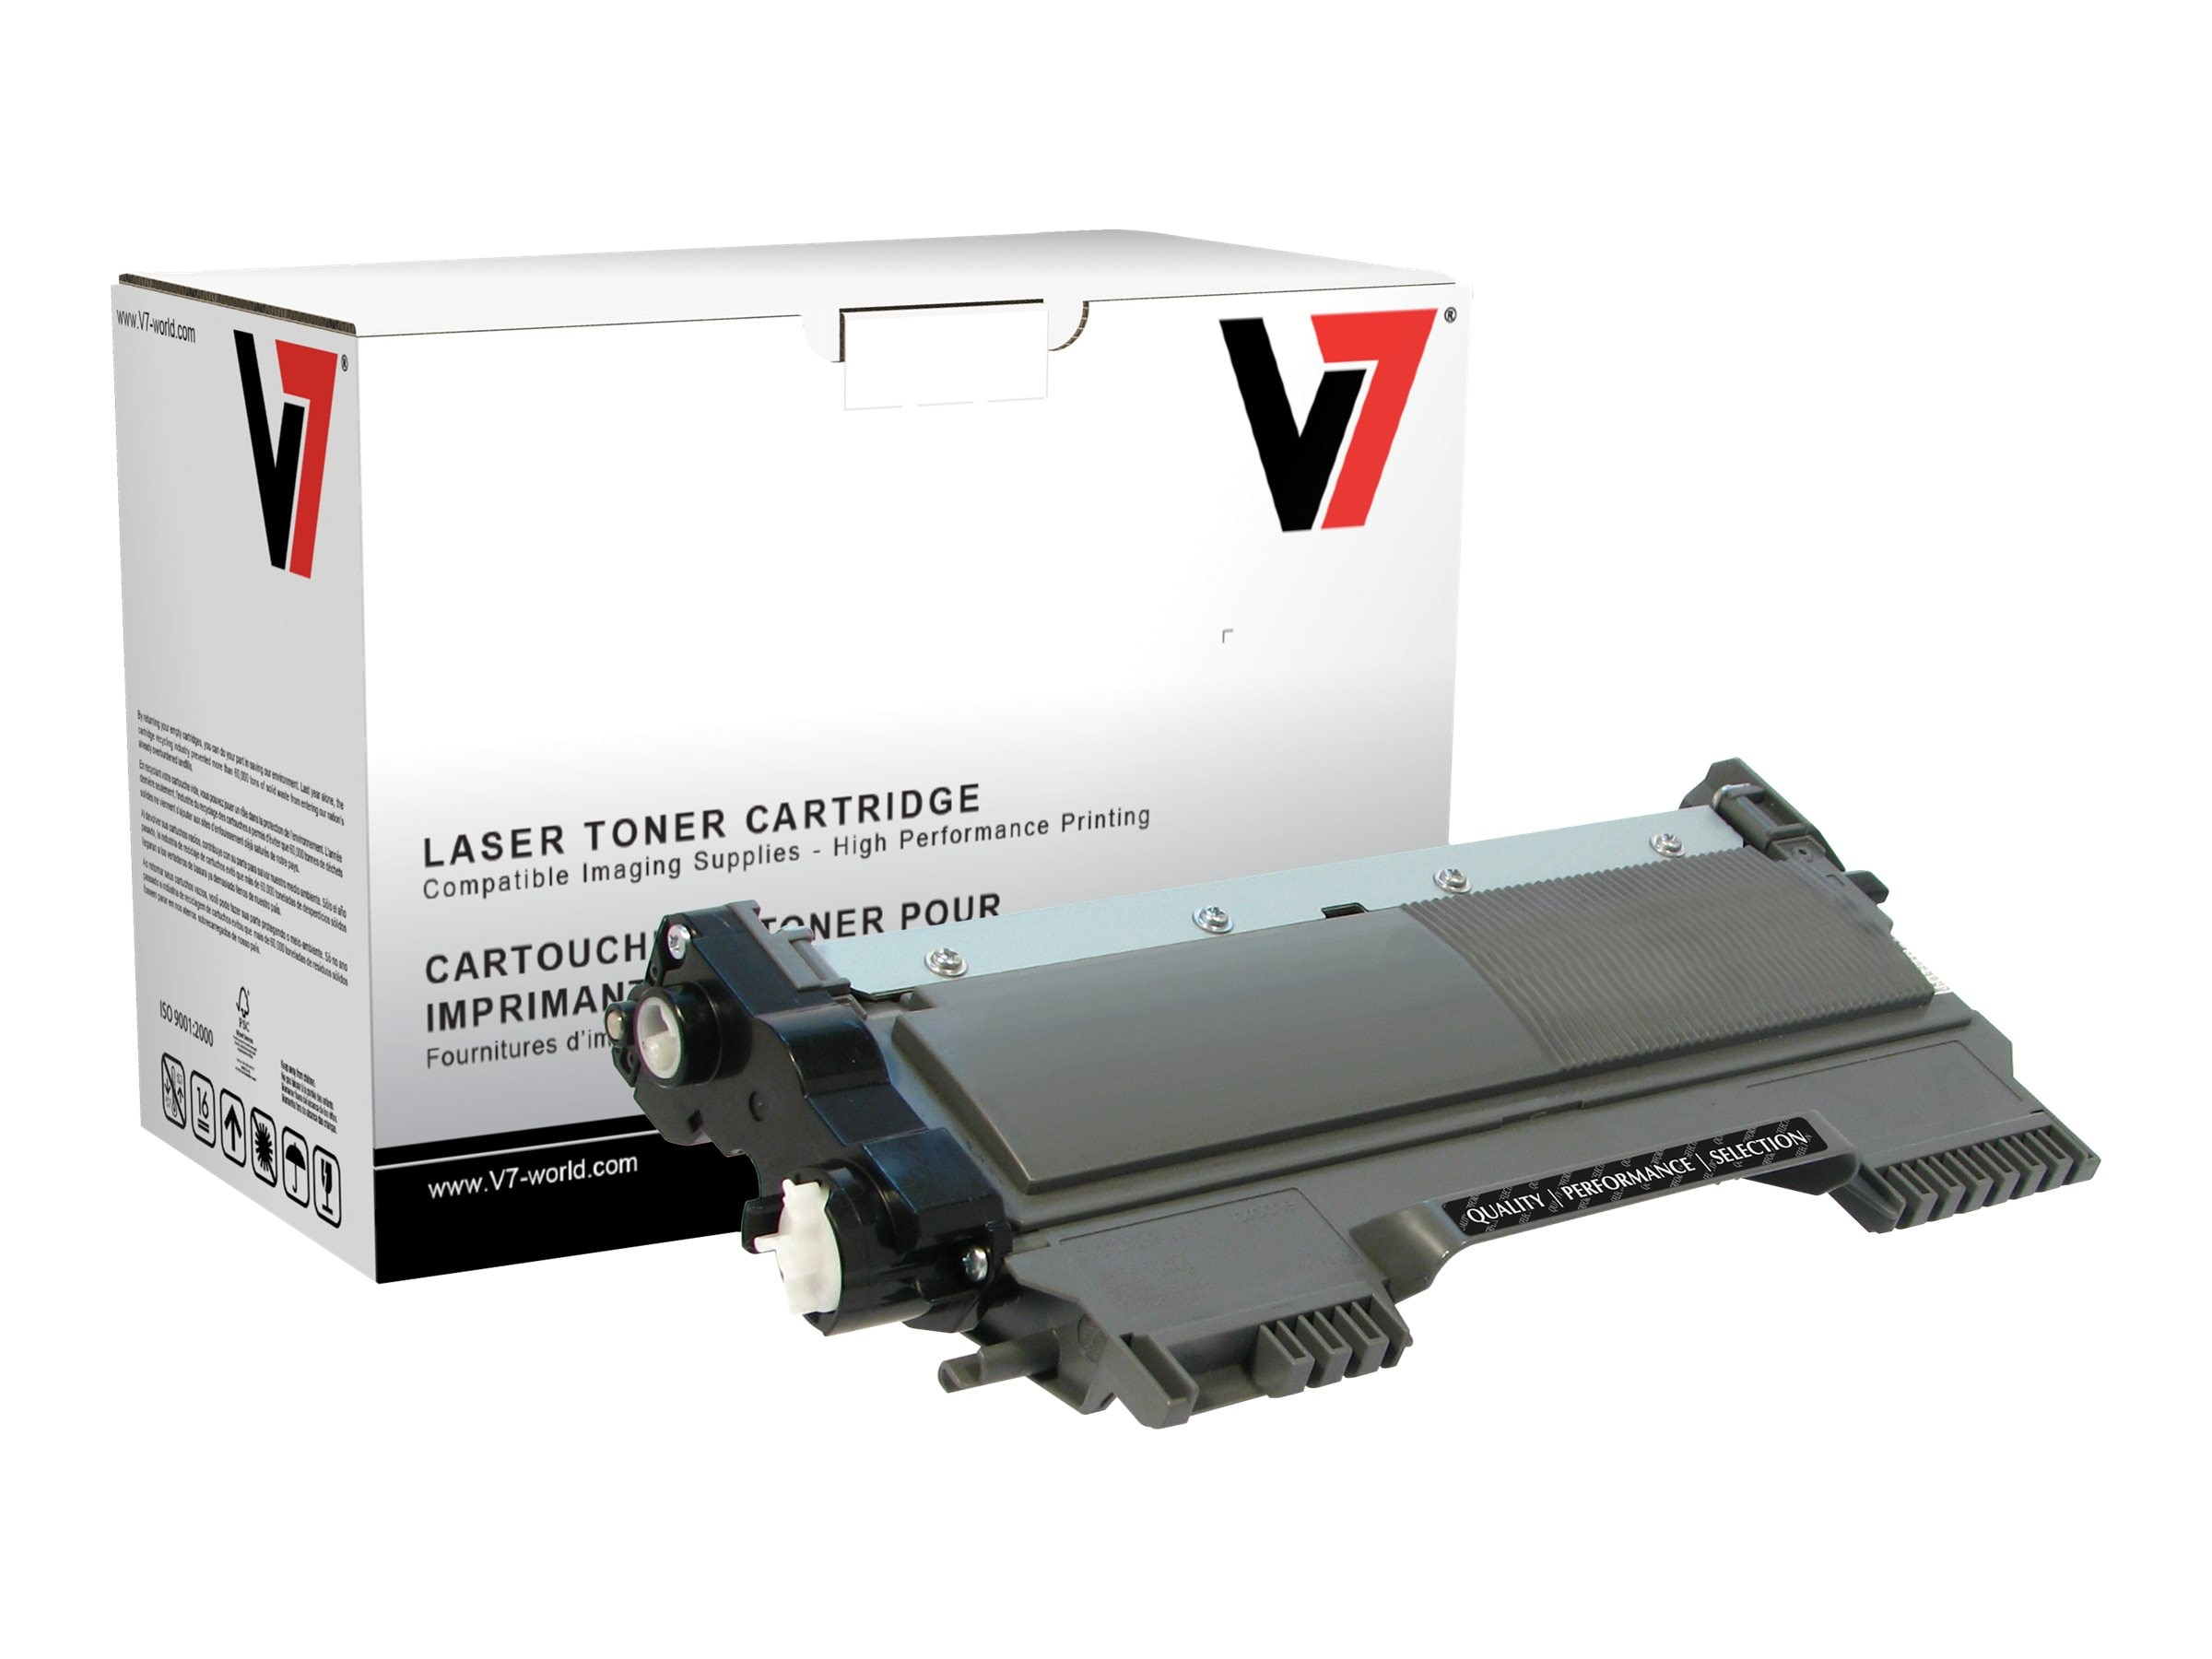 V7 TN420 Black Toner Cartridge for Brother HL-2240D (TAA Compliant), TBK2TN420